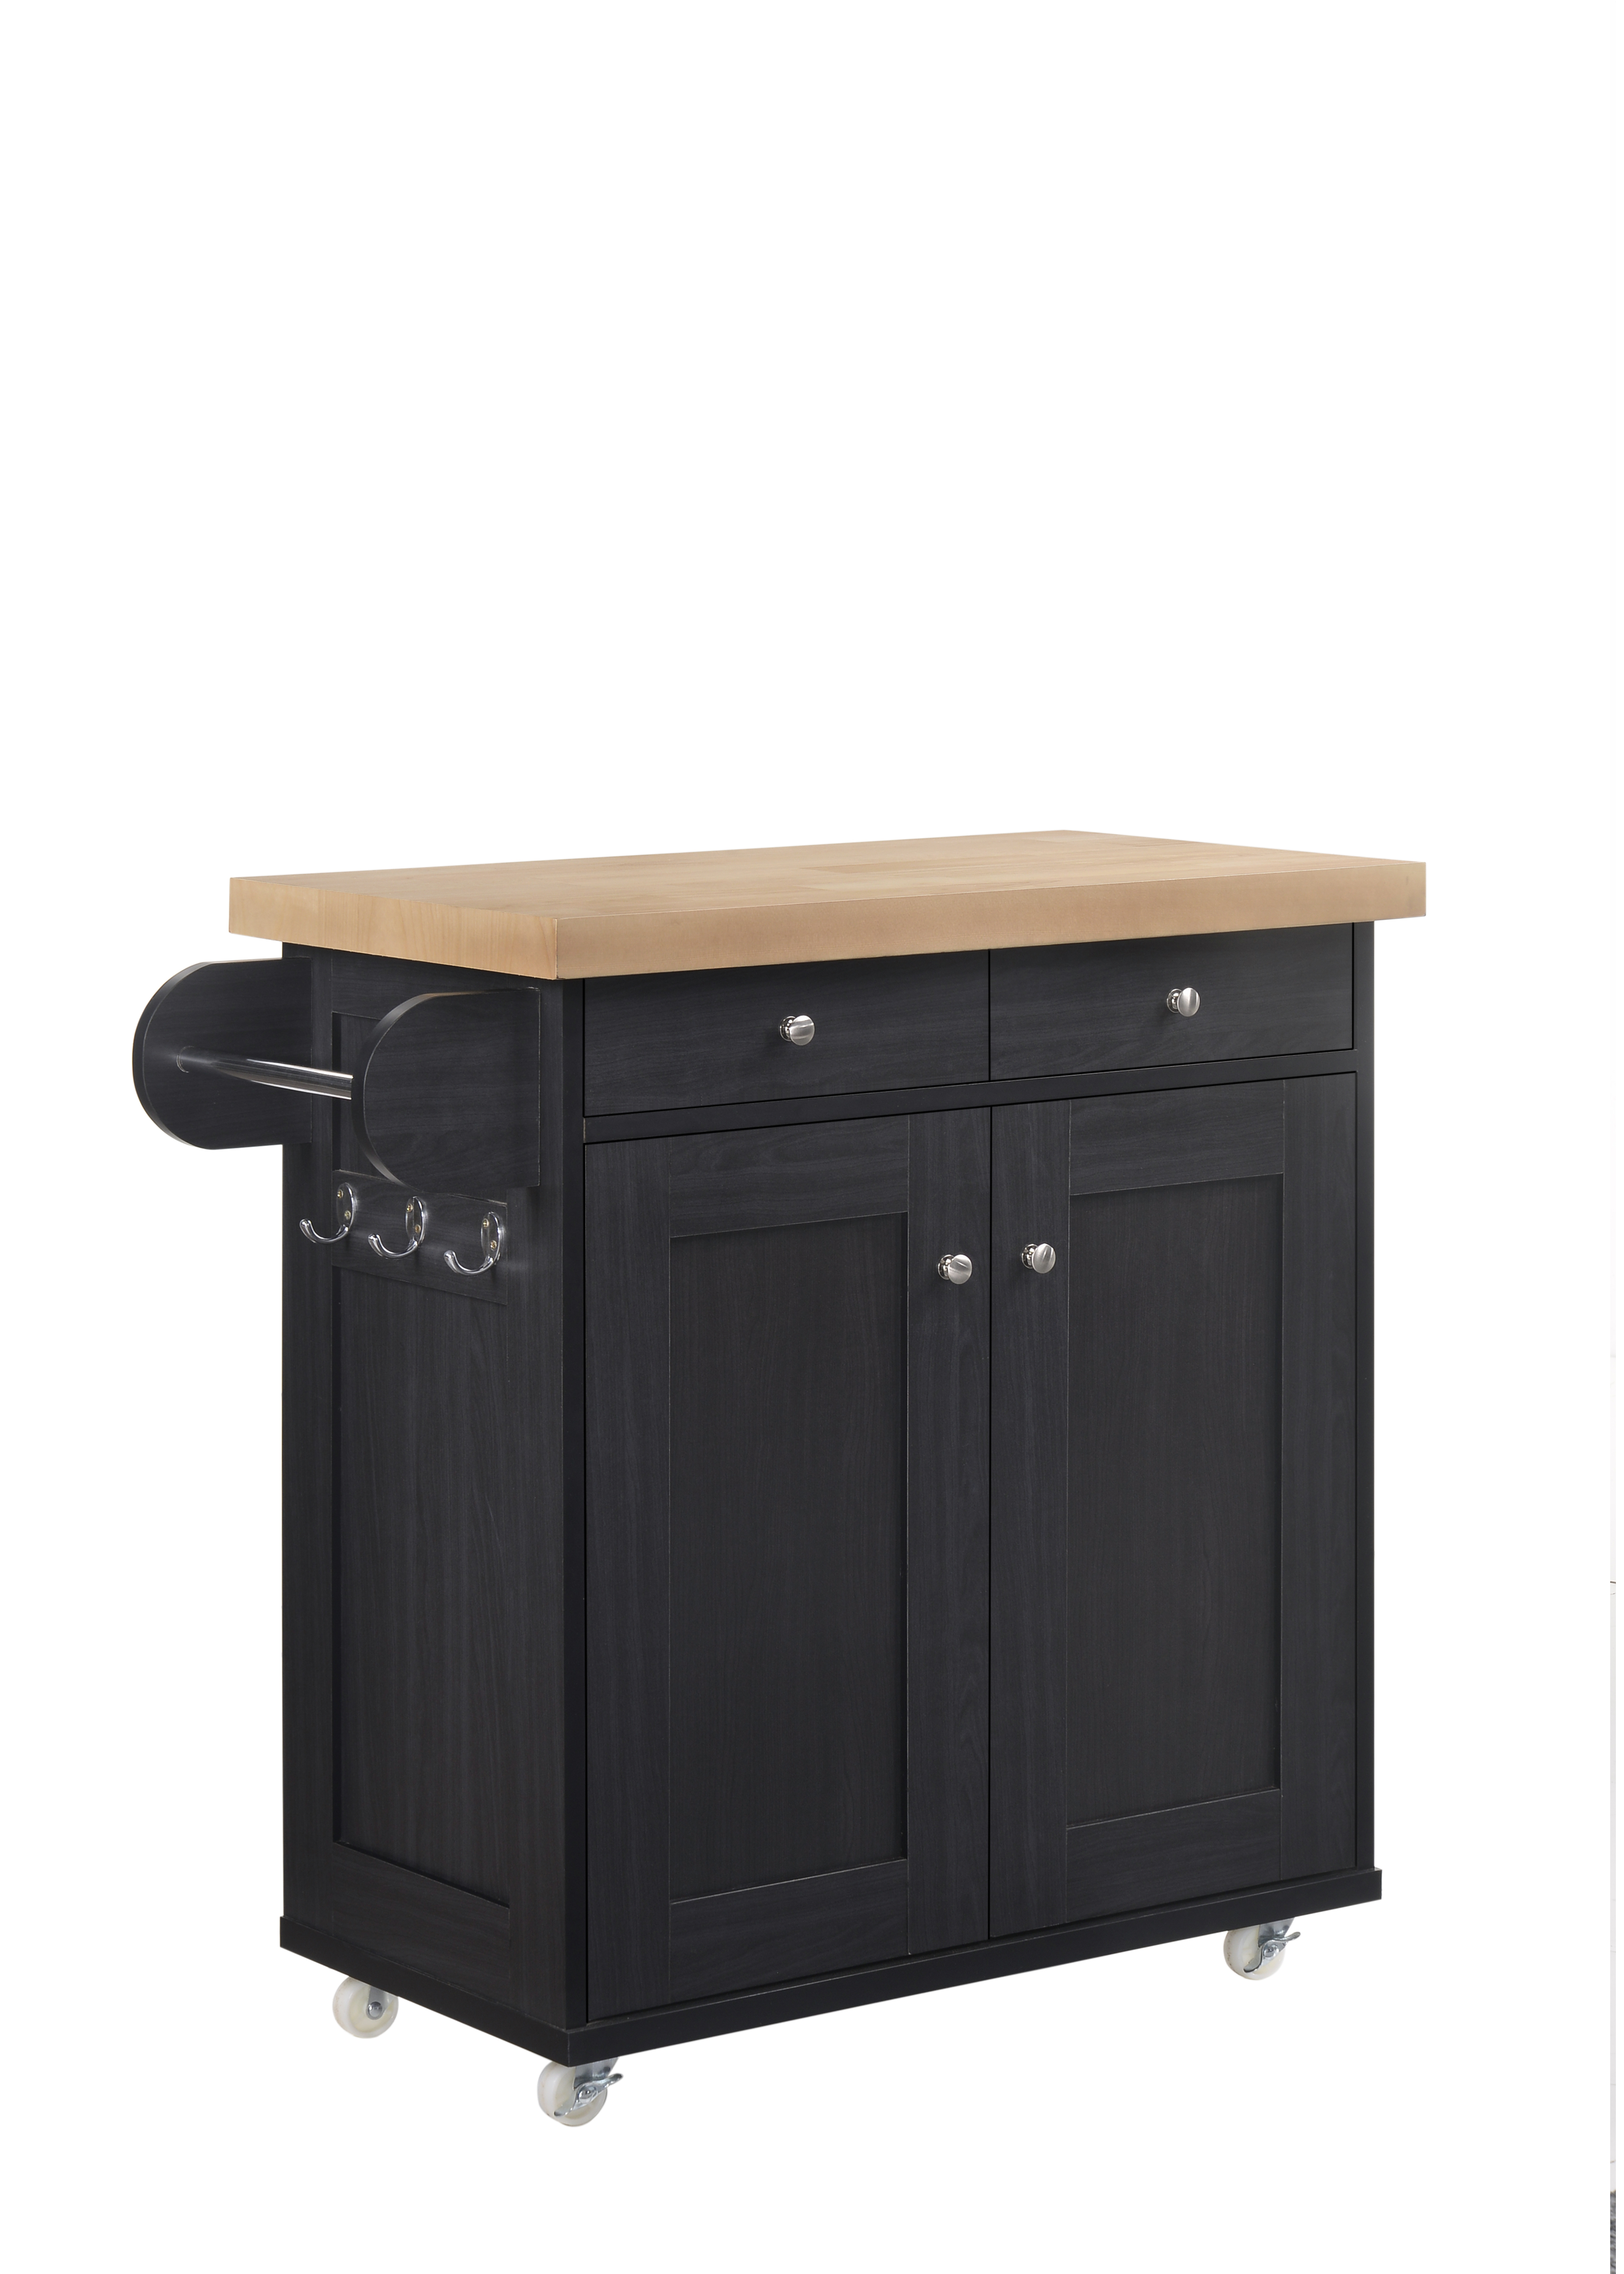 Portable Kitchen Island Trolley Cart On Wheels With Cupboard Storage Black